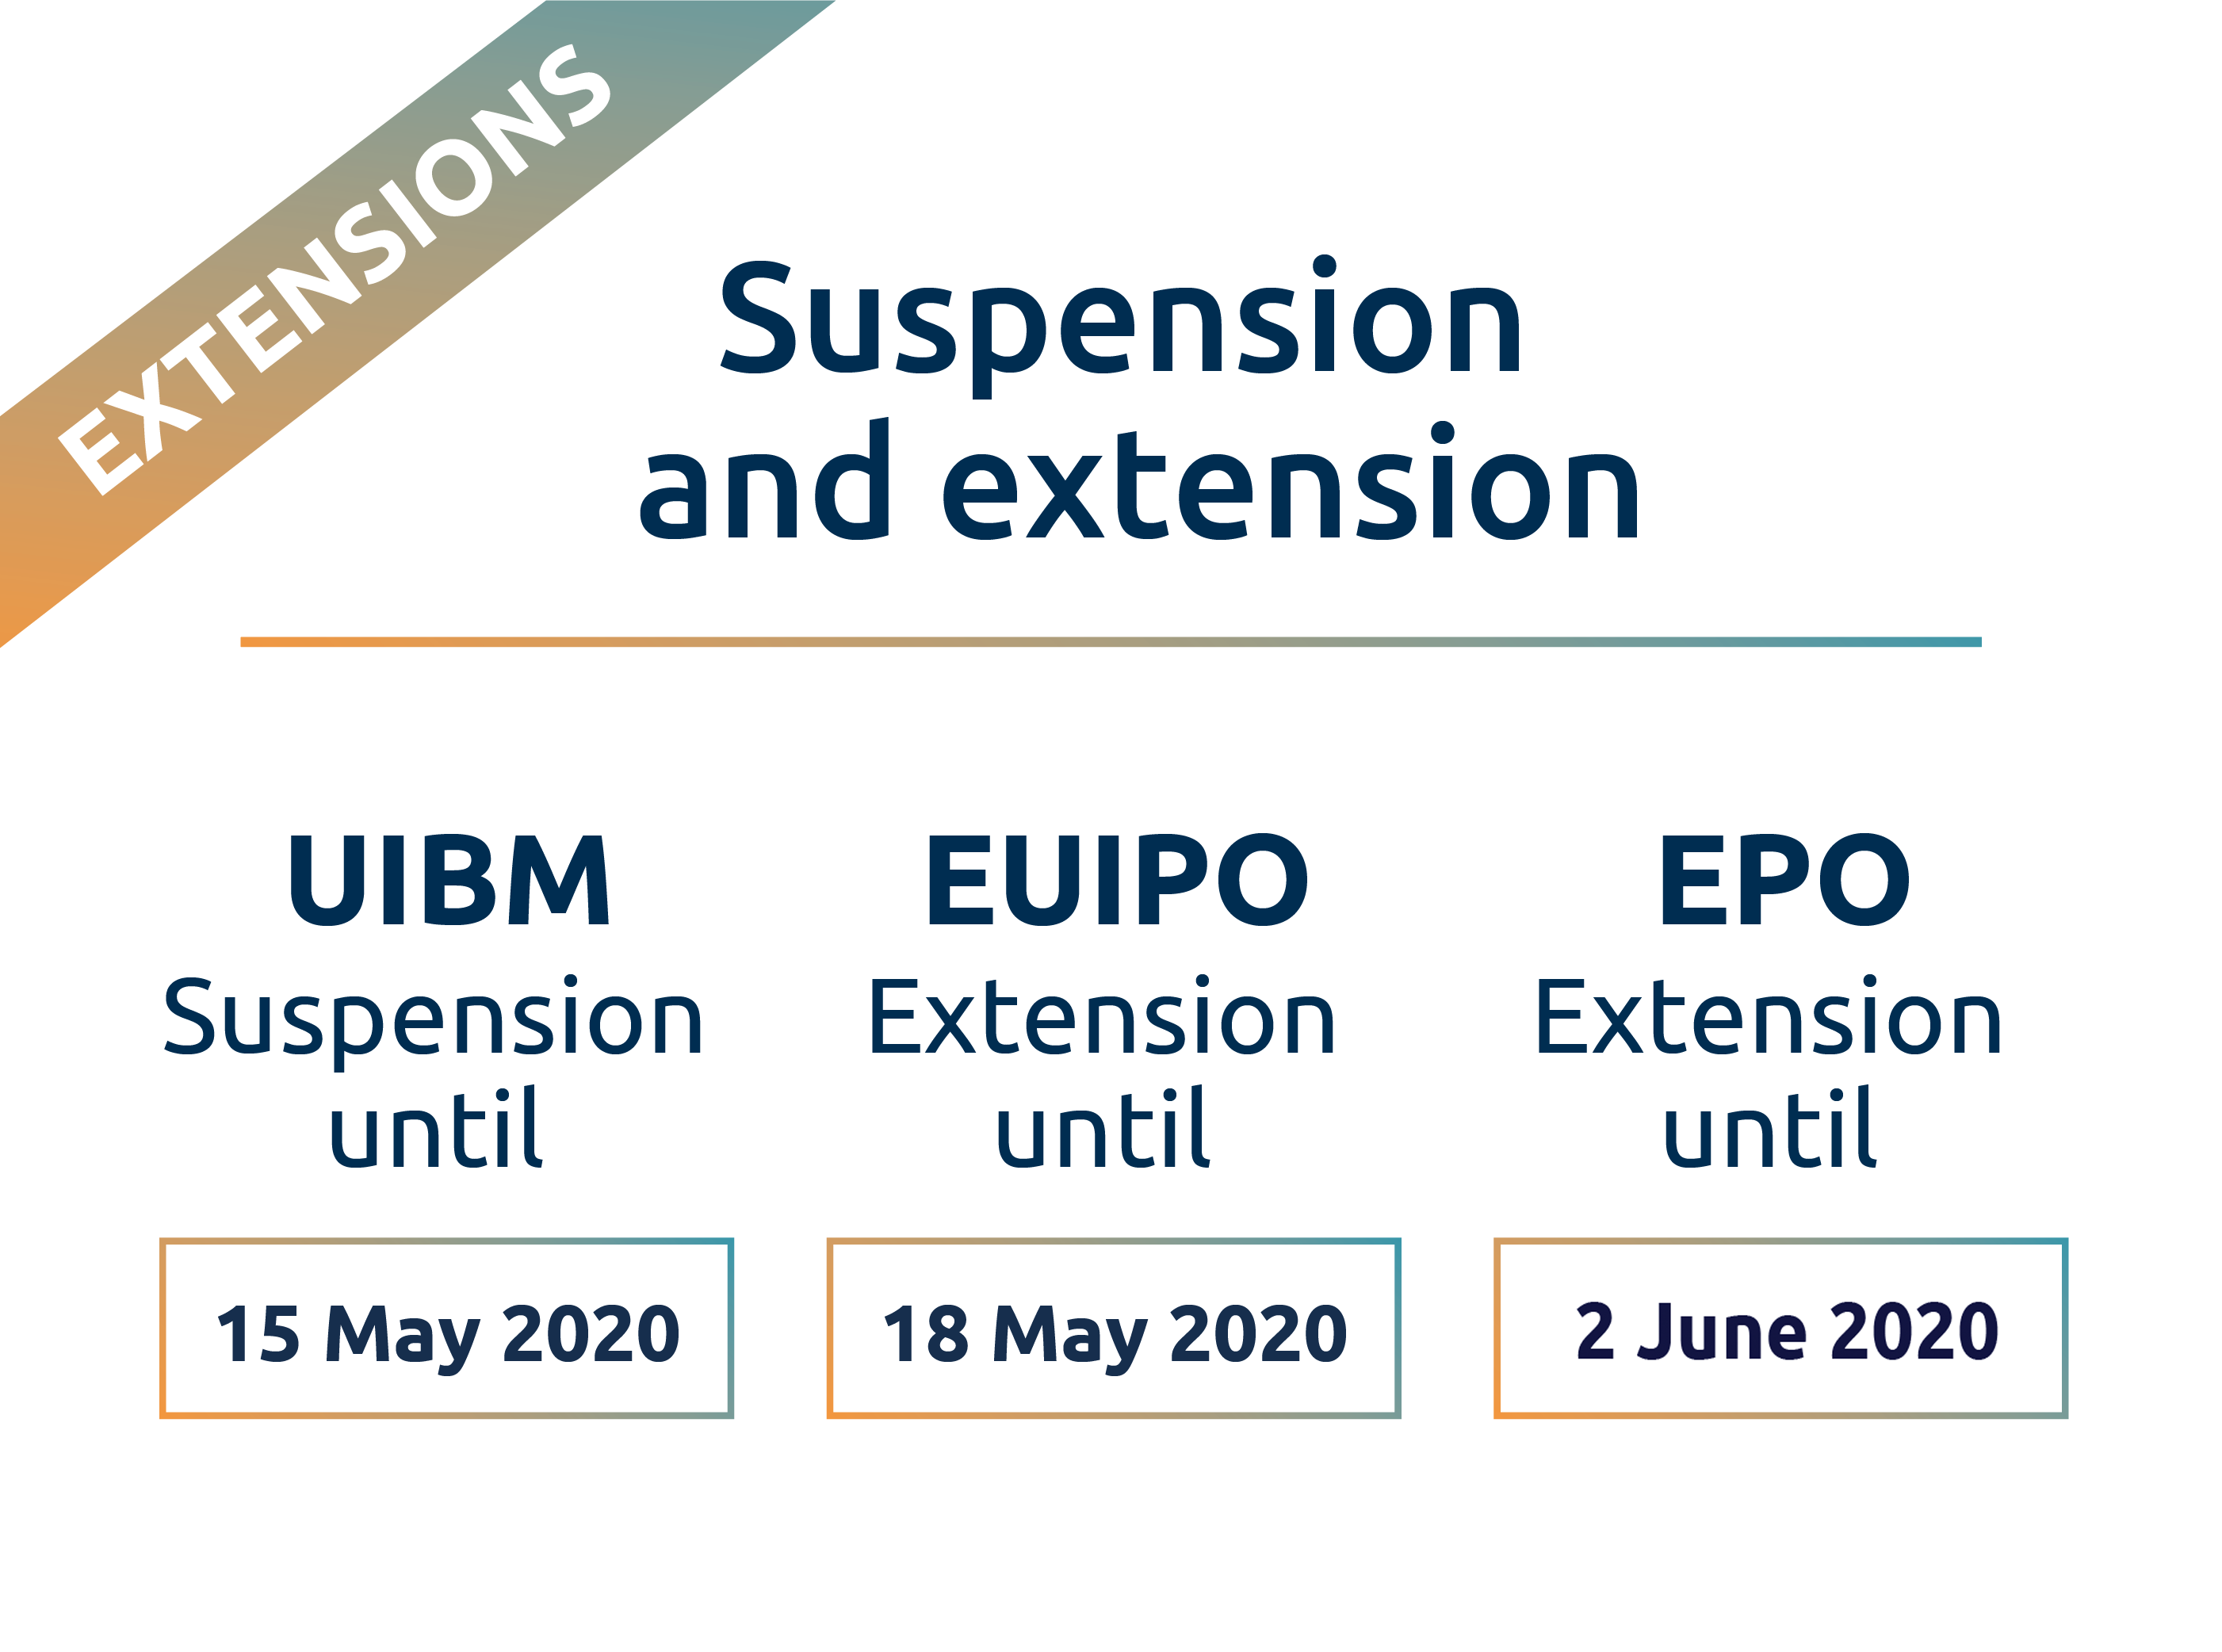 social-suspension-and-extension-2020-05-05